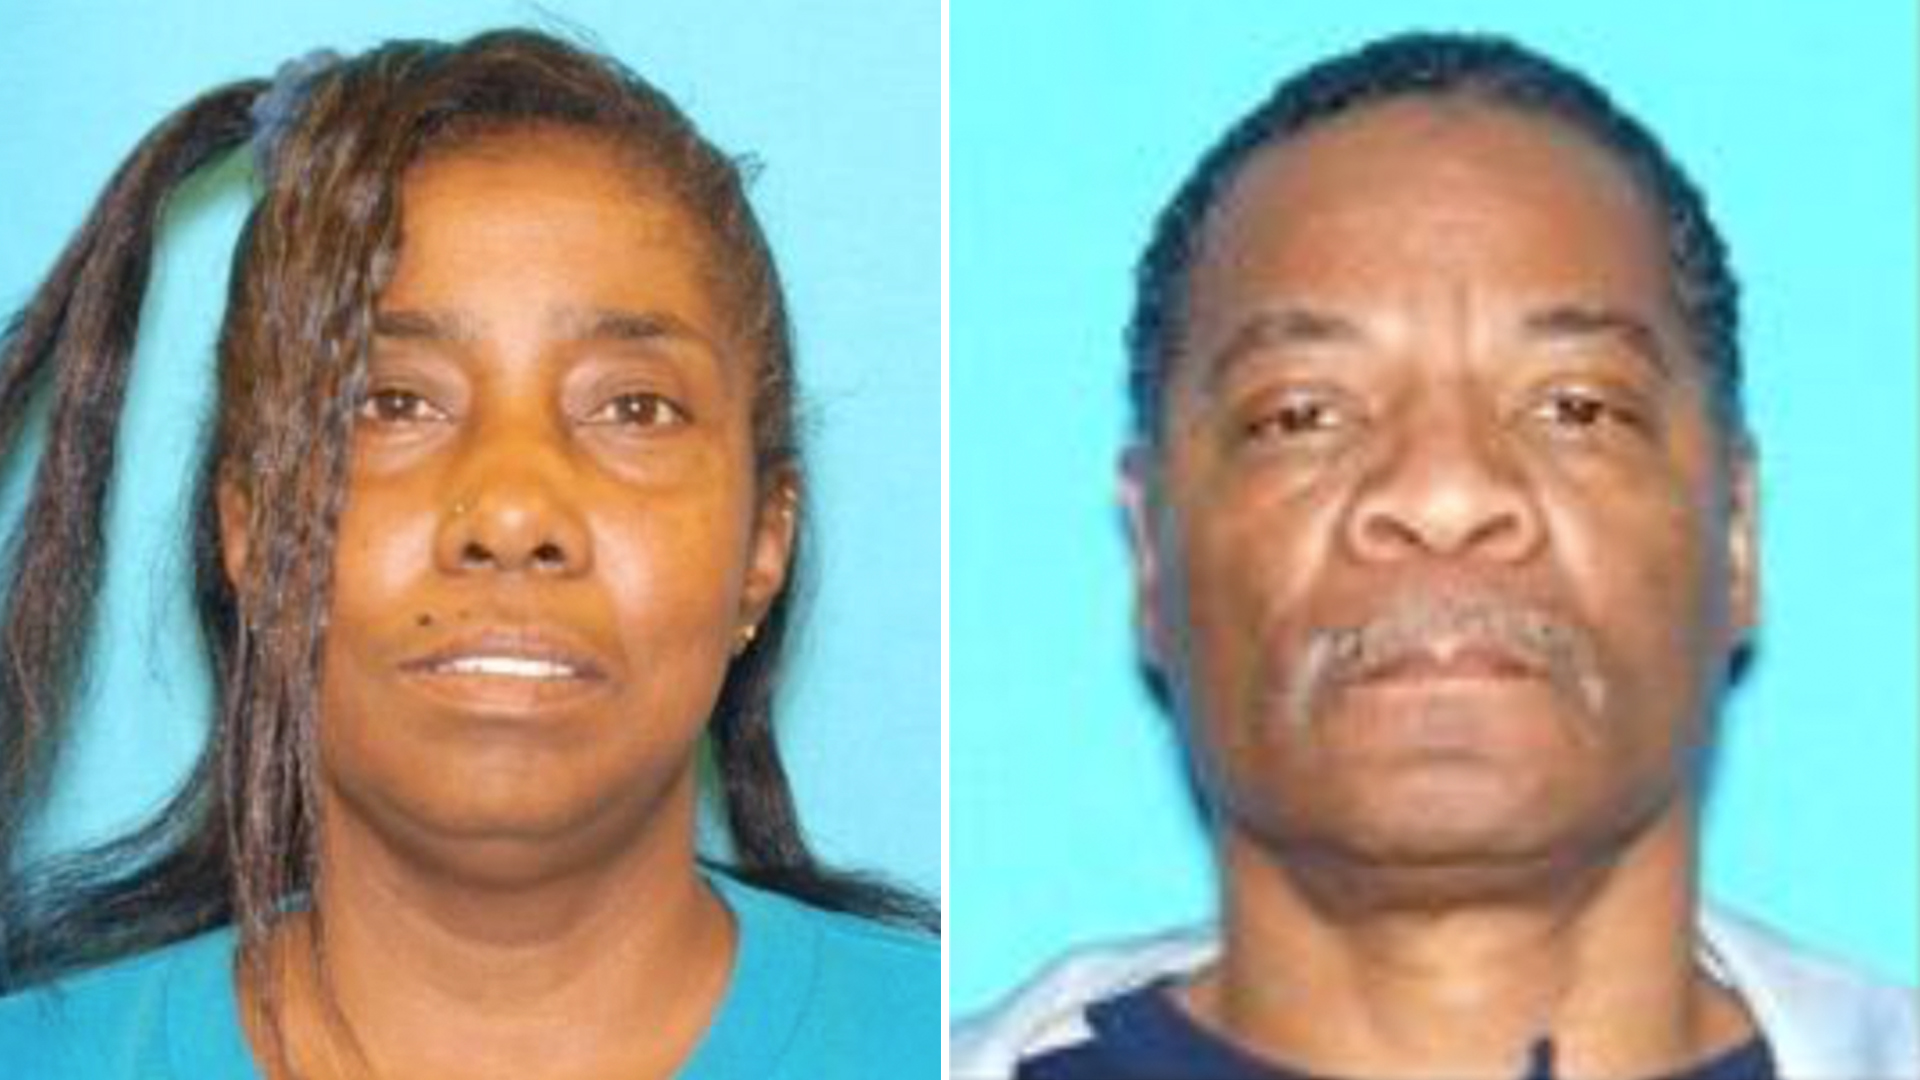 Shirley Smith, 59, left, and Claude Smith, 61, right, appear in undated photos provided by the San Bernardino Police Department on April 5, 2019.